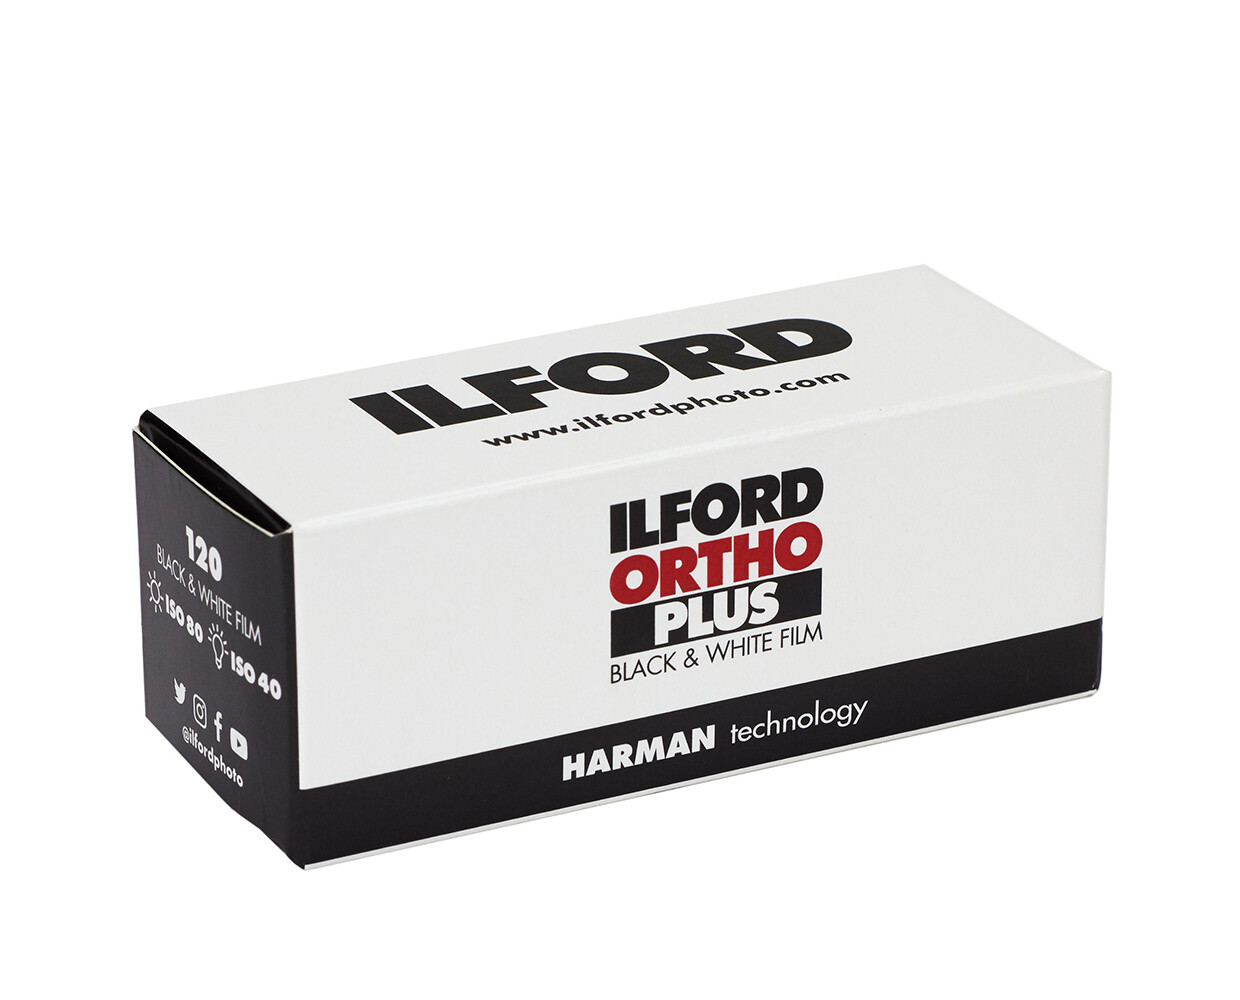 ILFORD Ortho 80 Plus 120 Rollfilm MHD 10/2022